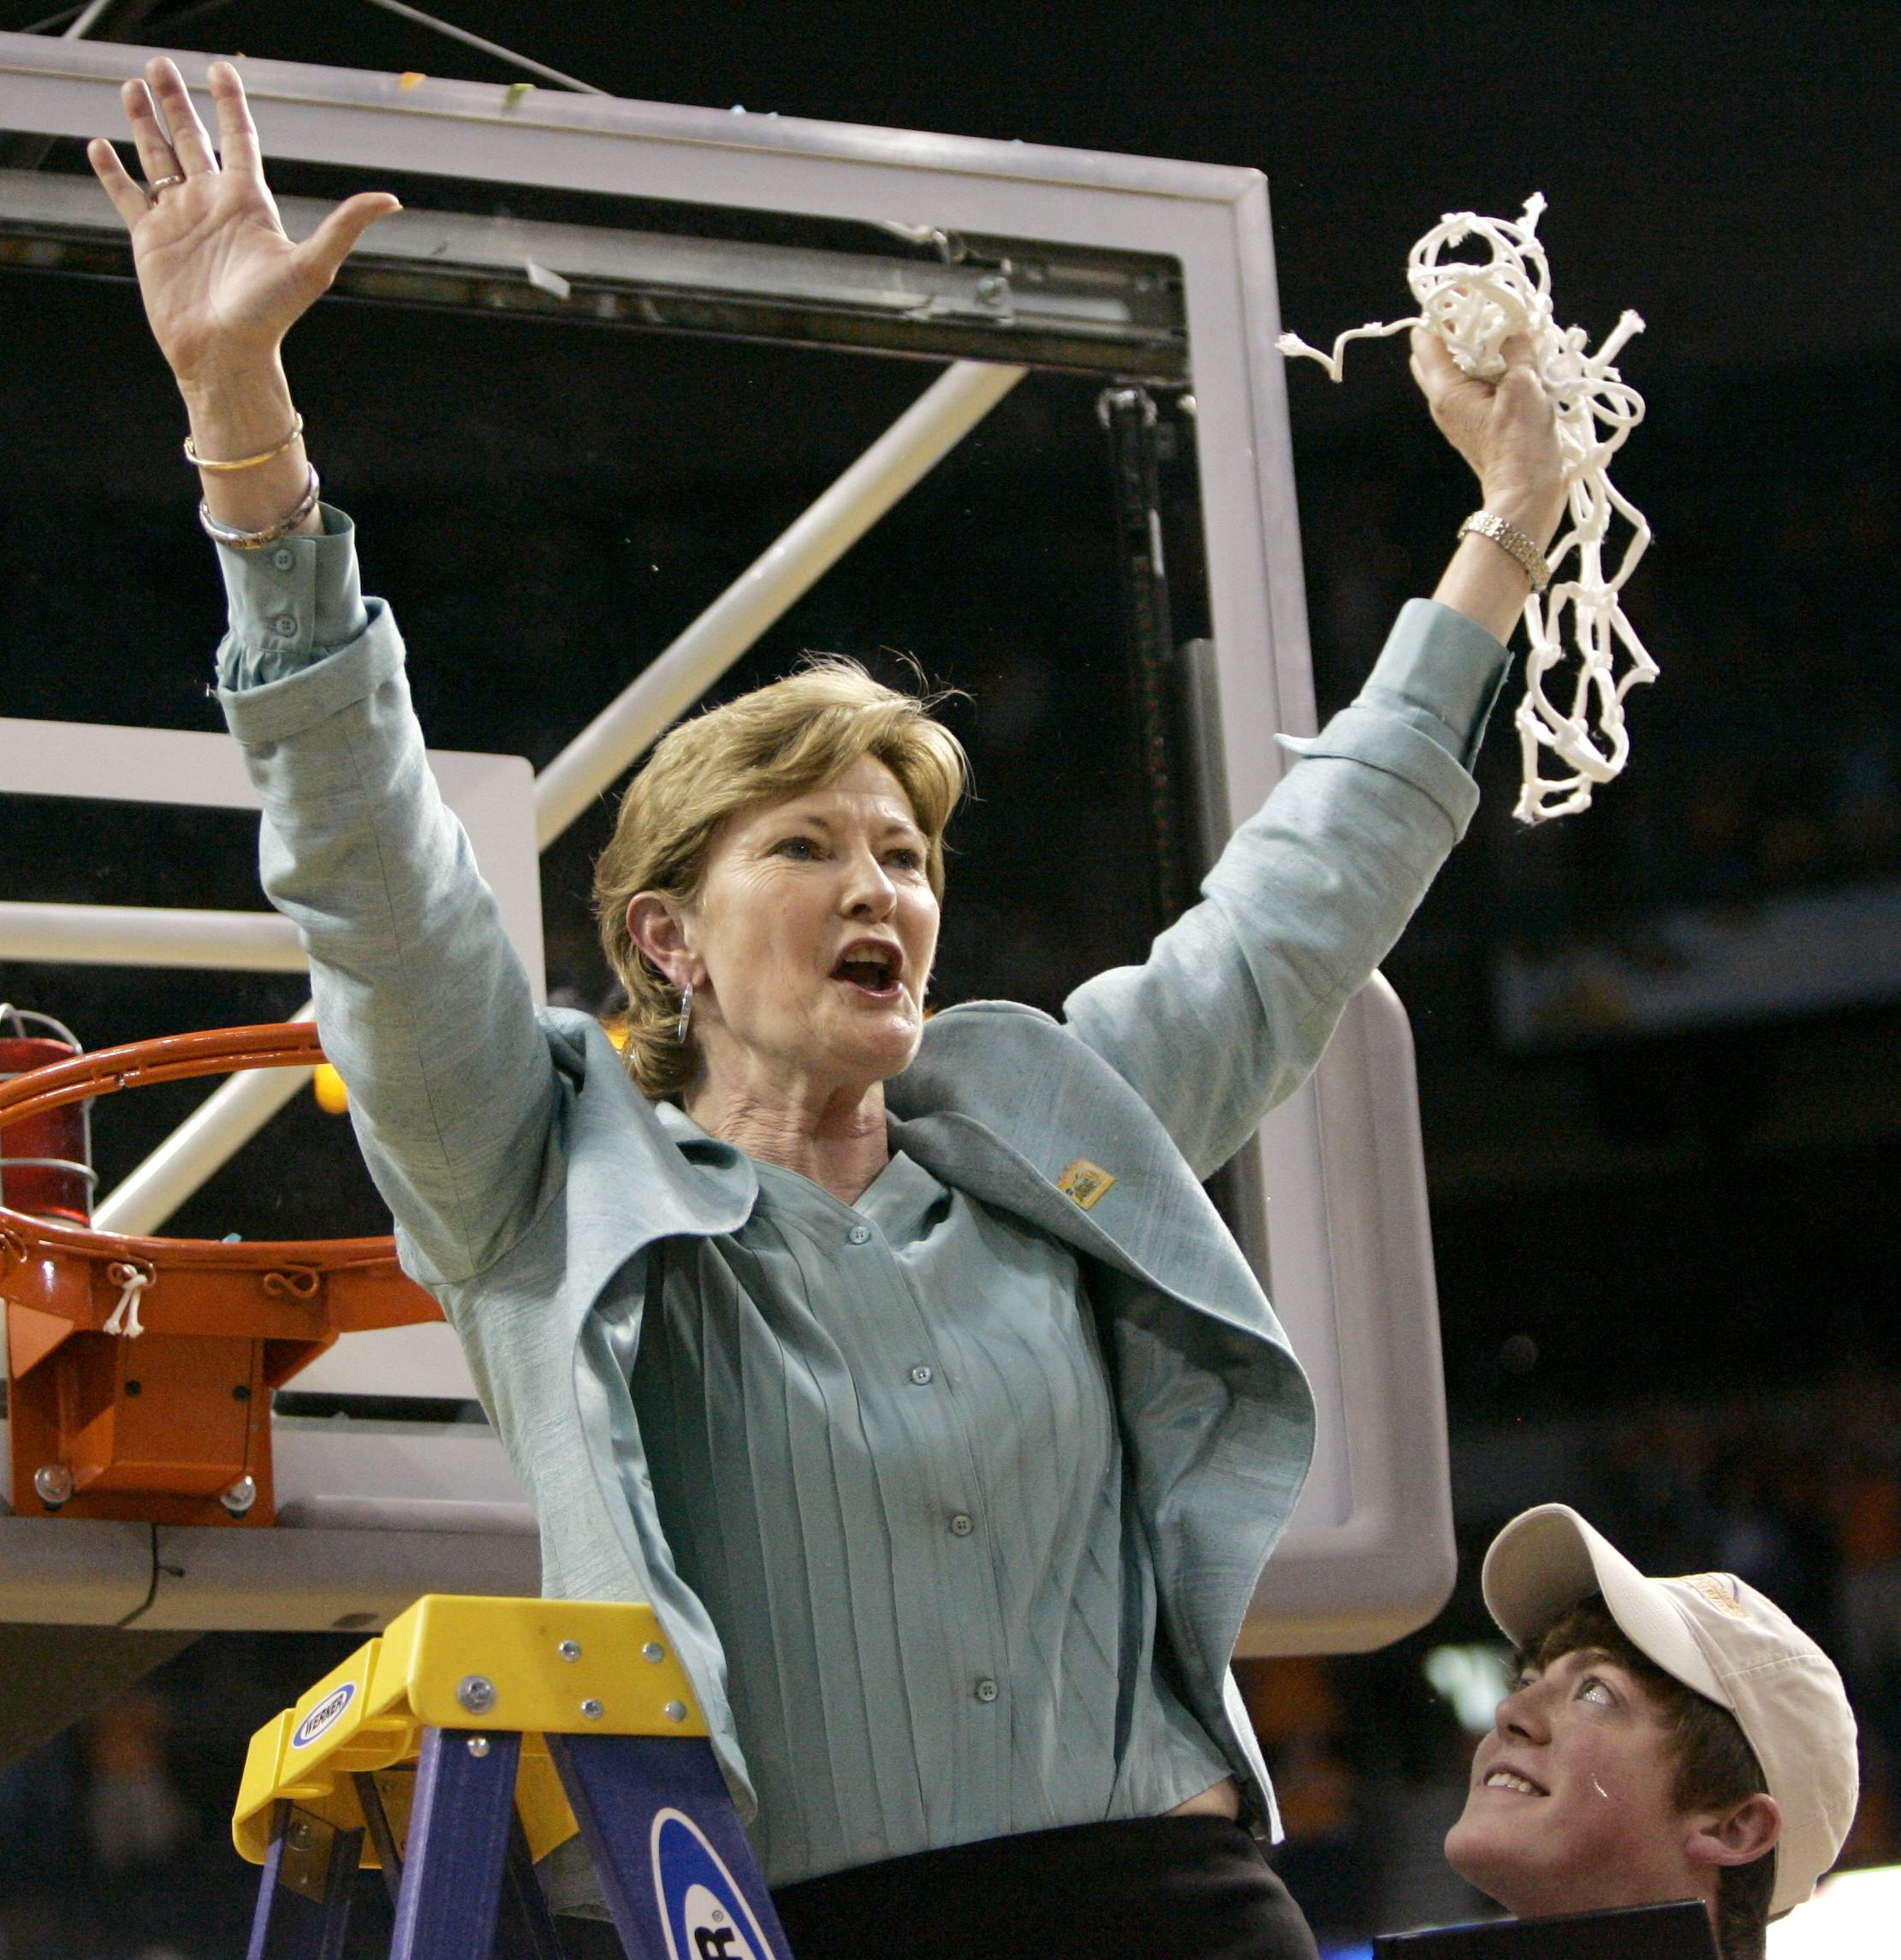 FILE — In this April 8, 2008, file photo, Tennessee coach Pat Summitt holds up the net as her son, Tyler, looks on after Tennessee beat Stanford 64-48 to win its eighth national women's basketball championship, at the NCAA women's basketball tournament Final Four in Tampa, Fla. Summitt, the winningest coach in Division I college basketball history who uplifted the women's game from obscurity to national prominence during her career at Tennessee, died Tuesday morning, June 28, 2016. She was 64. (AP Photo/Gerry Broome, File)